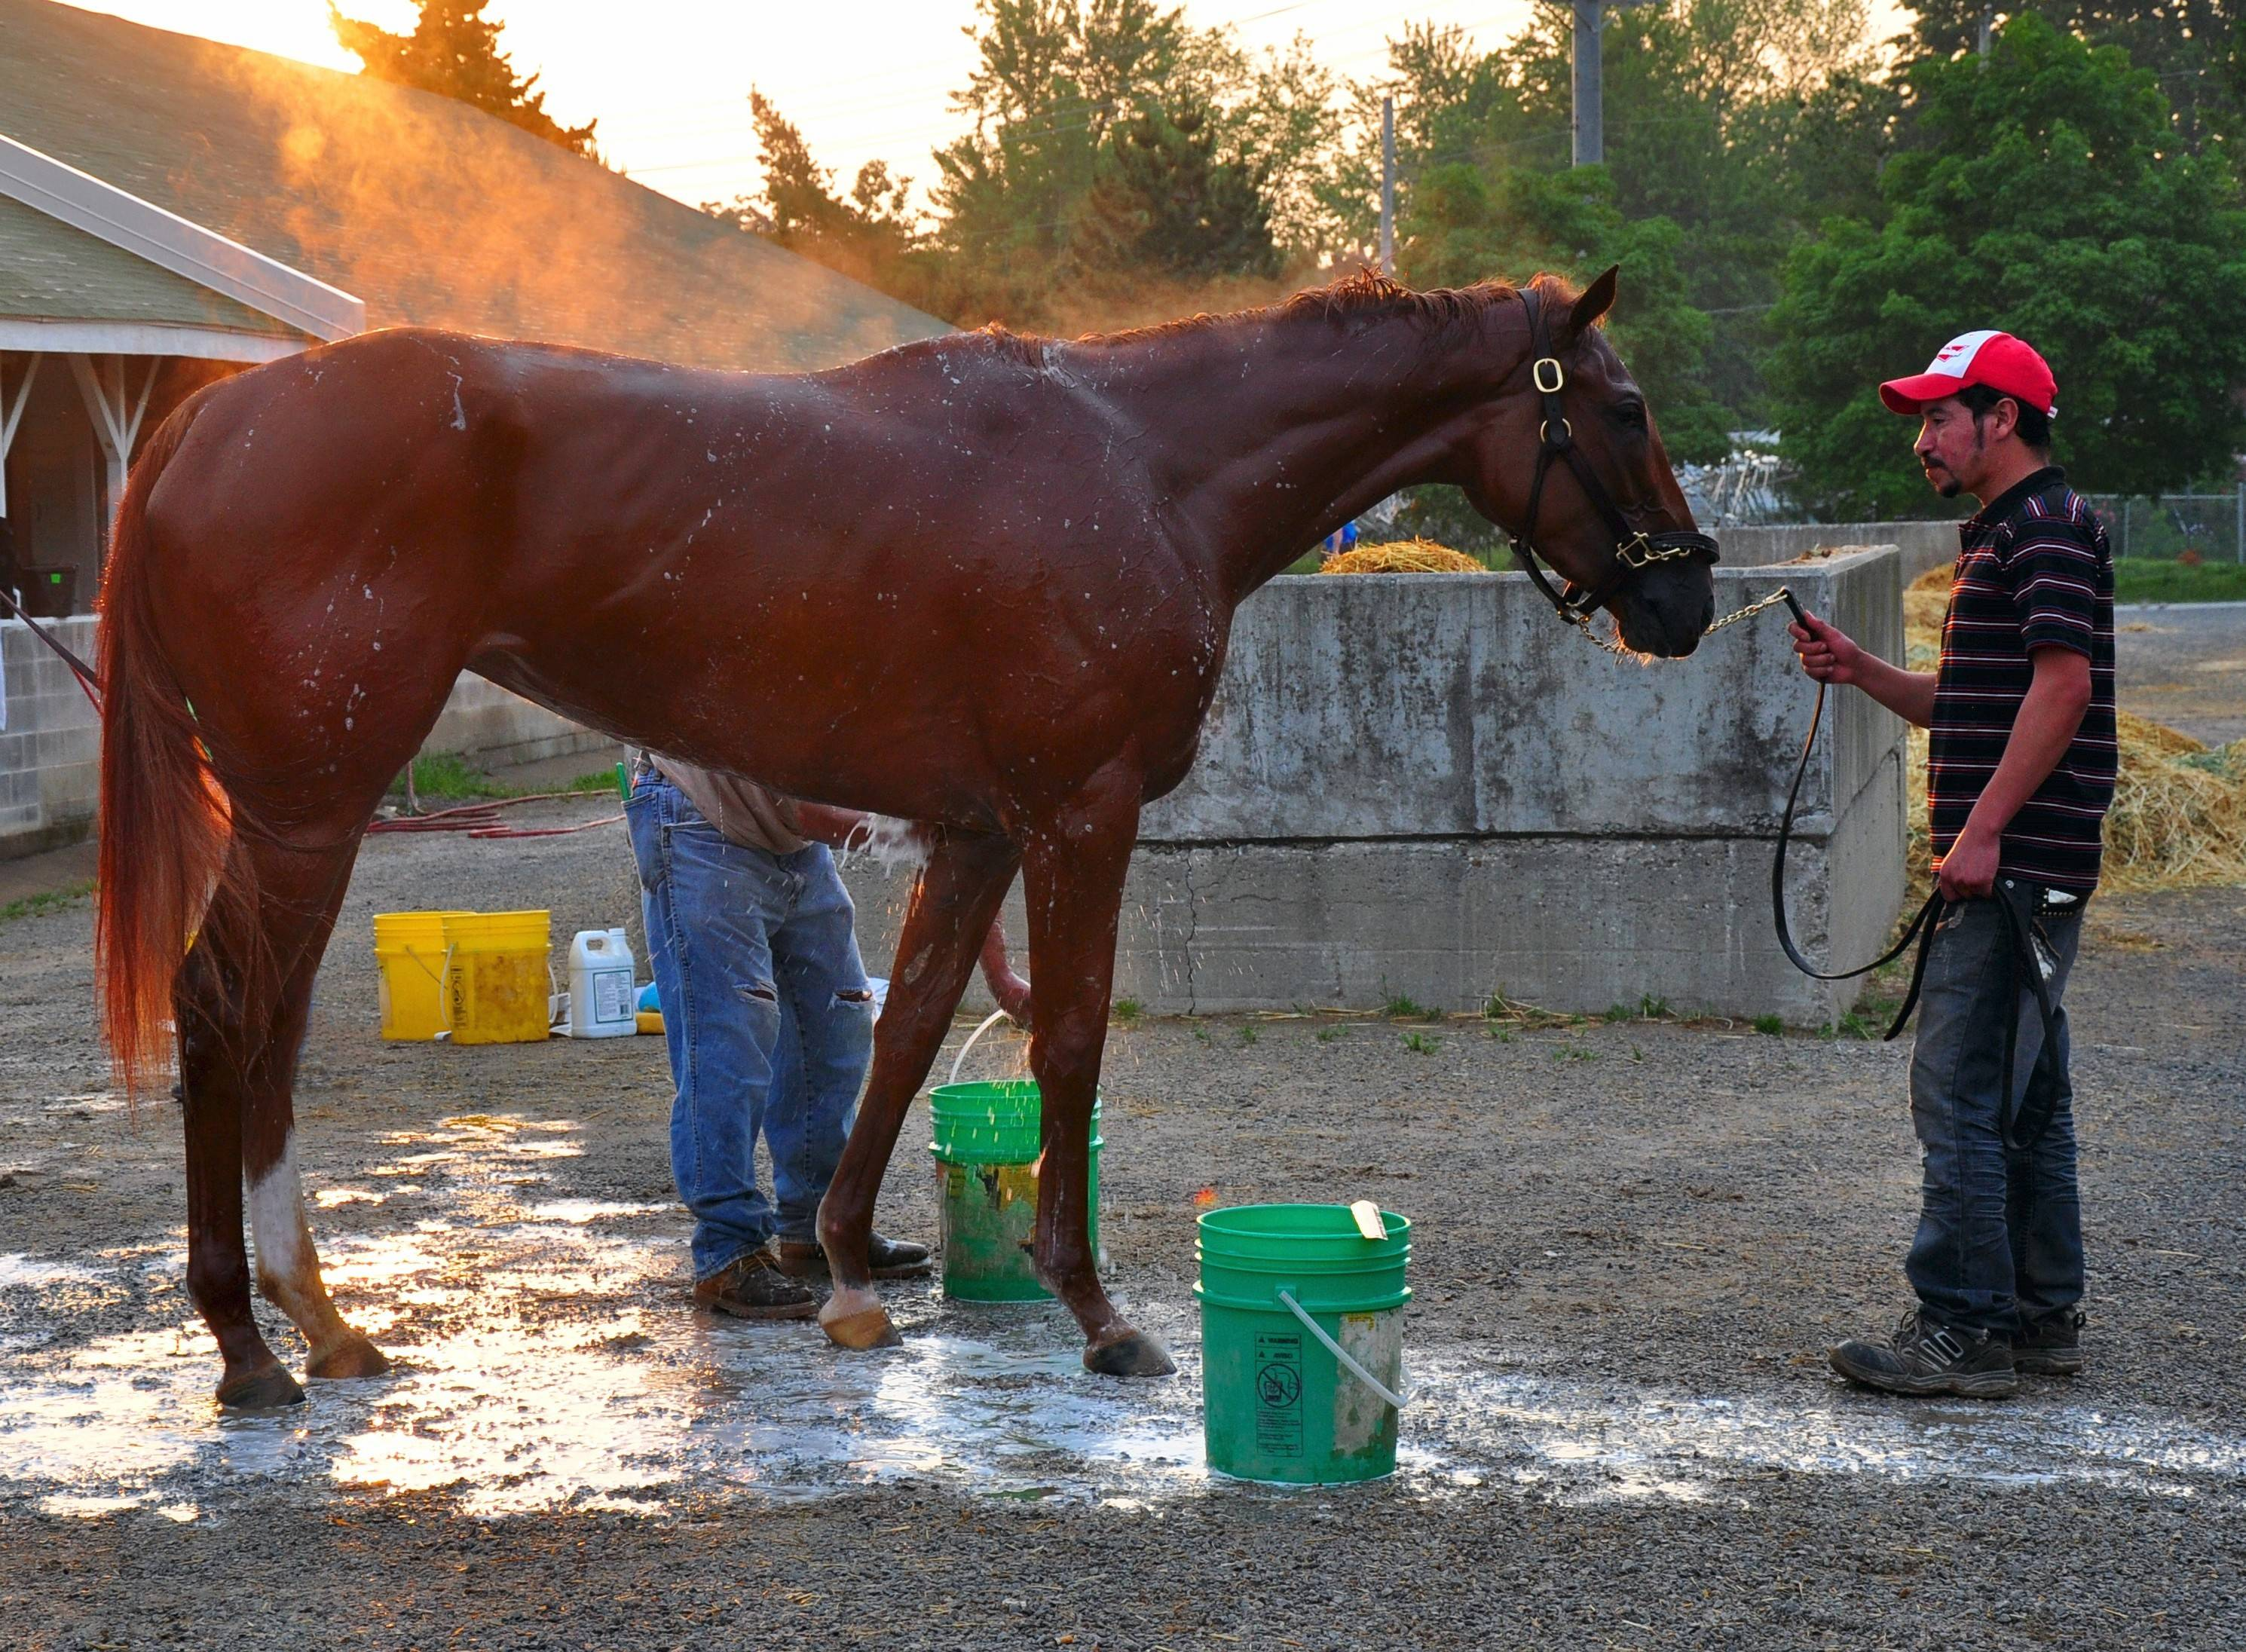 Visitors on the Barn and Backside tour at Churchill Downs may see horses being washed down after an early morning workout.